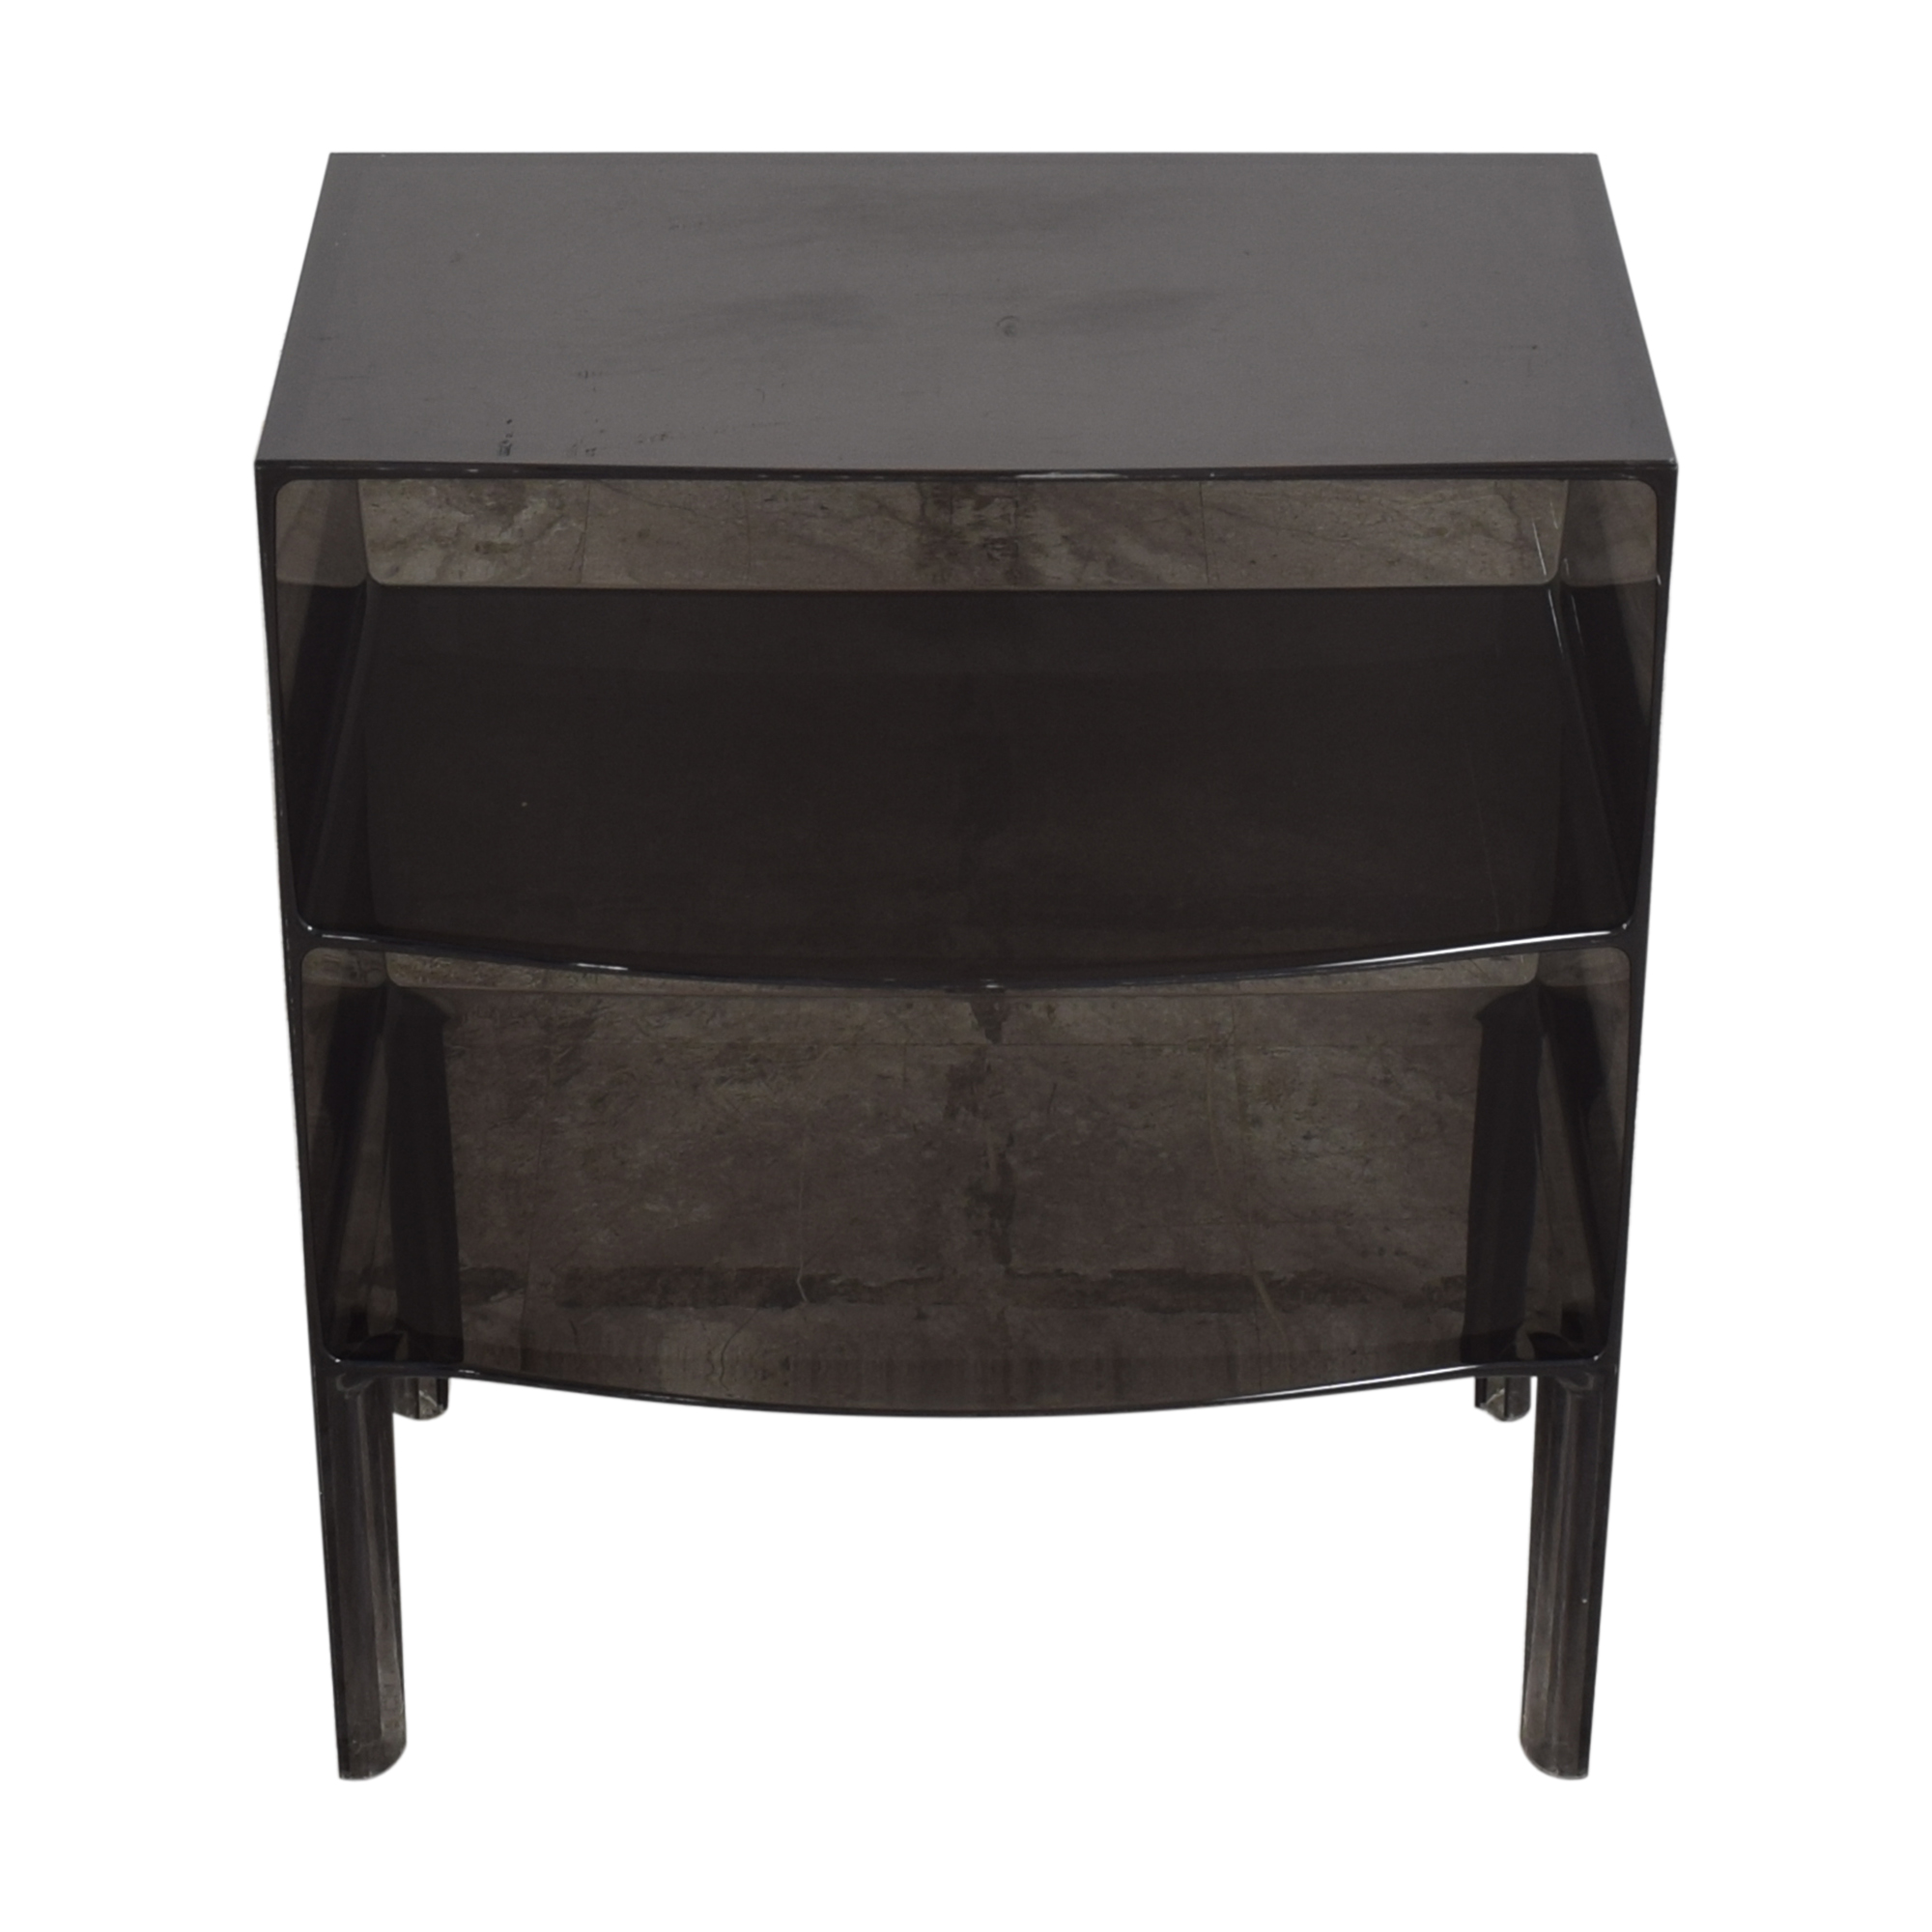 Kartell Kartell Ghost Buster Sideboard by Philippe Starck for sale